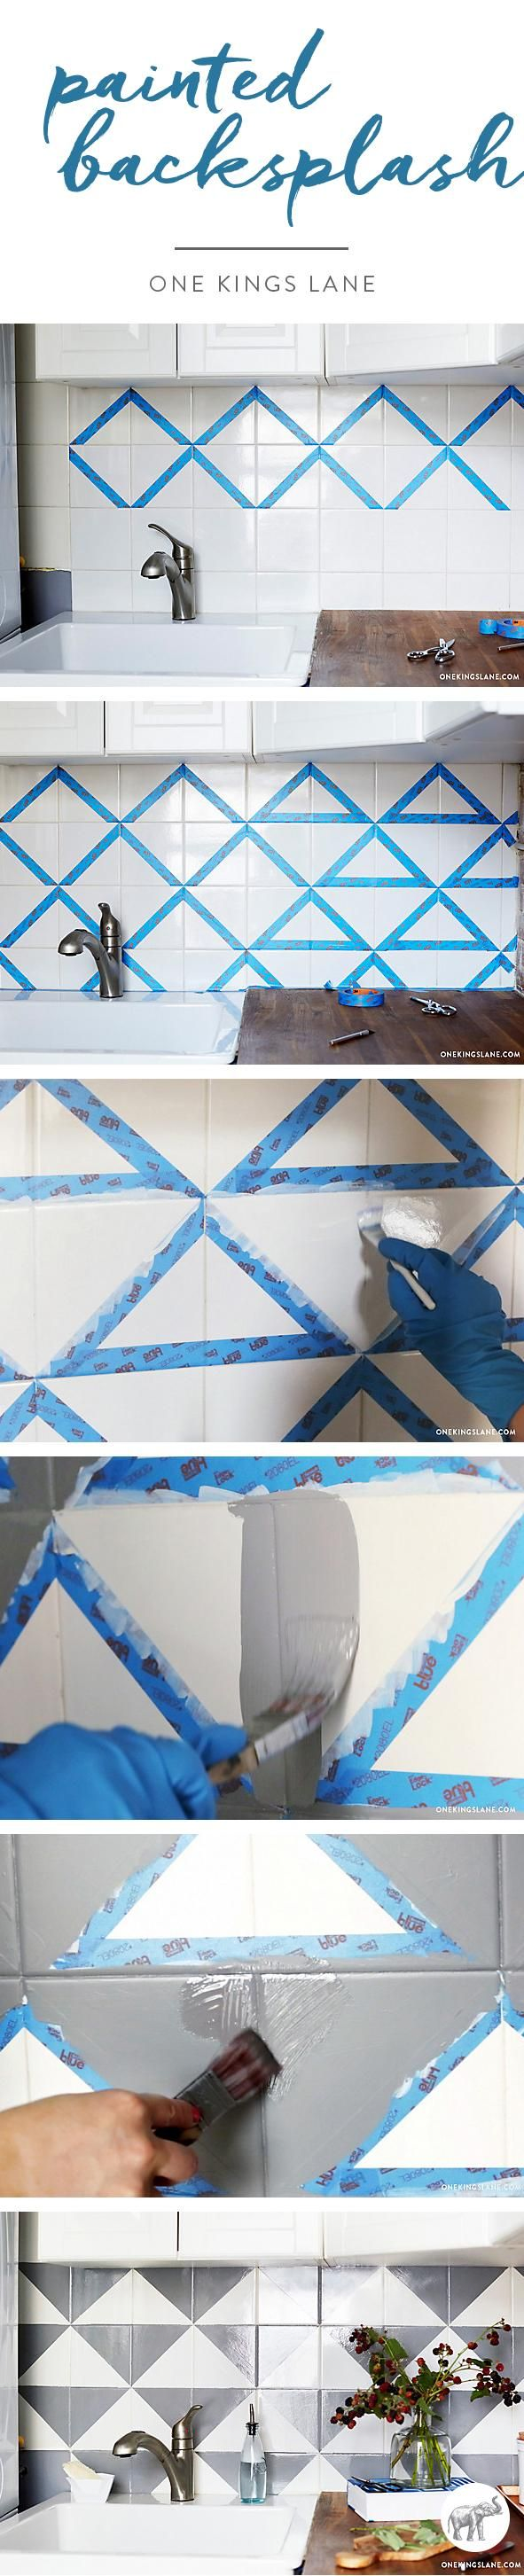 The ultimate DIY project to revamp your tired backsplash!